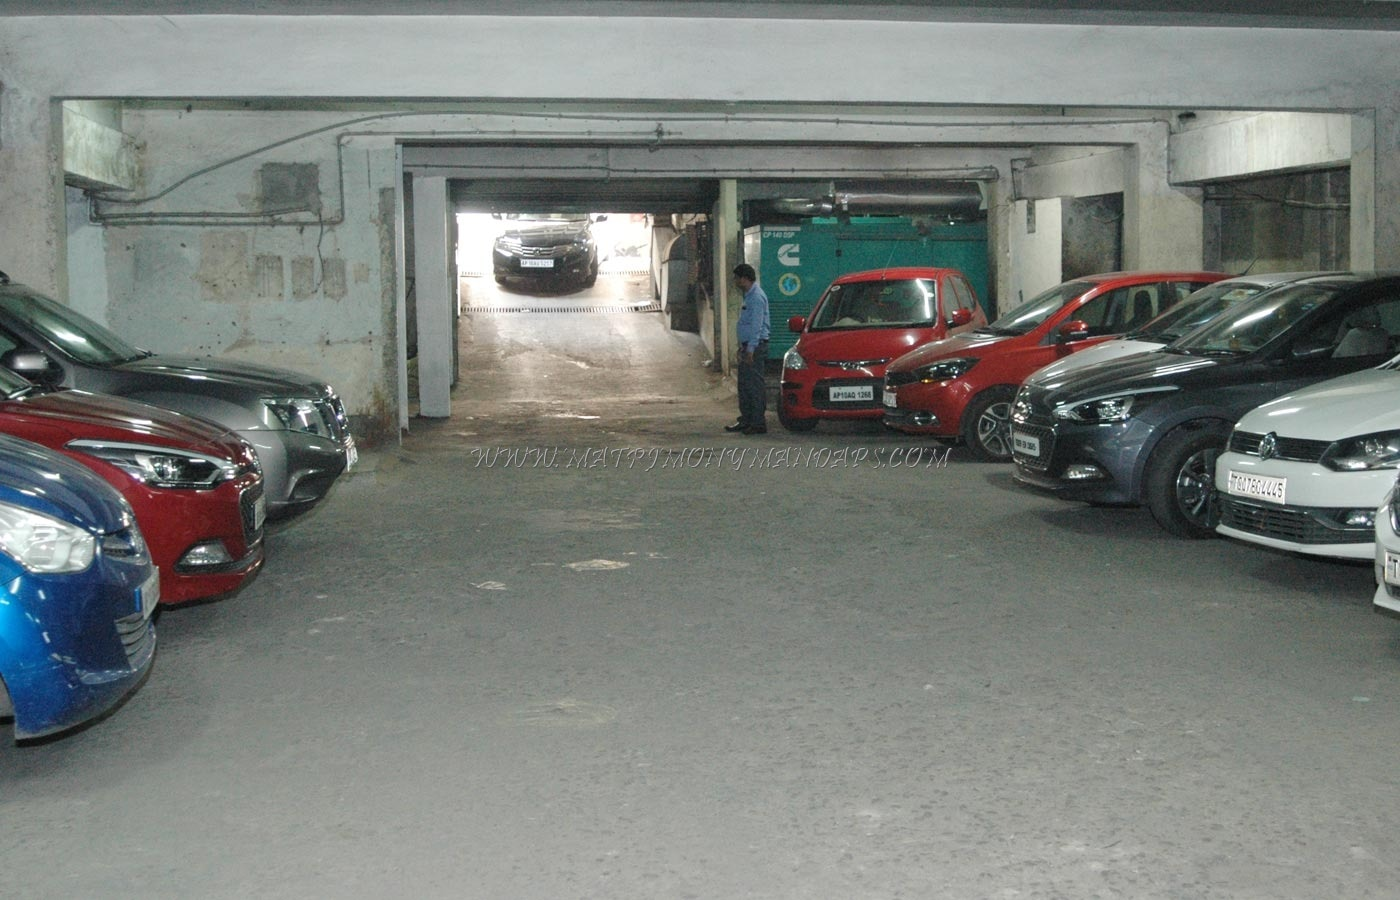 Chutneys Banquet Hall 1 - Car Parking